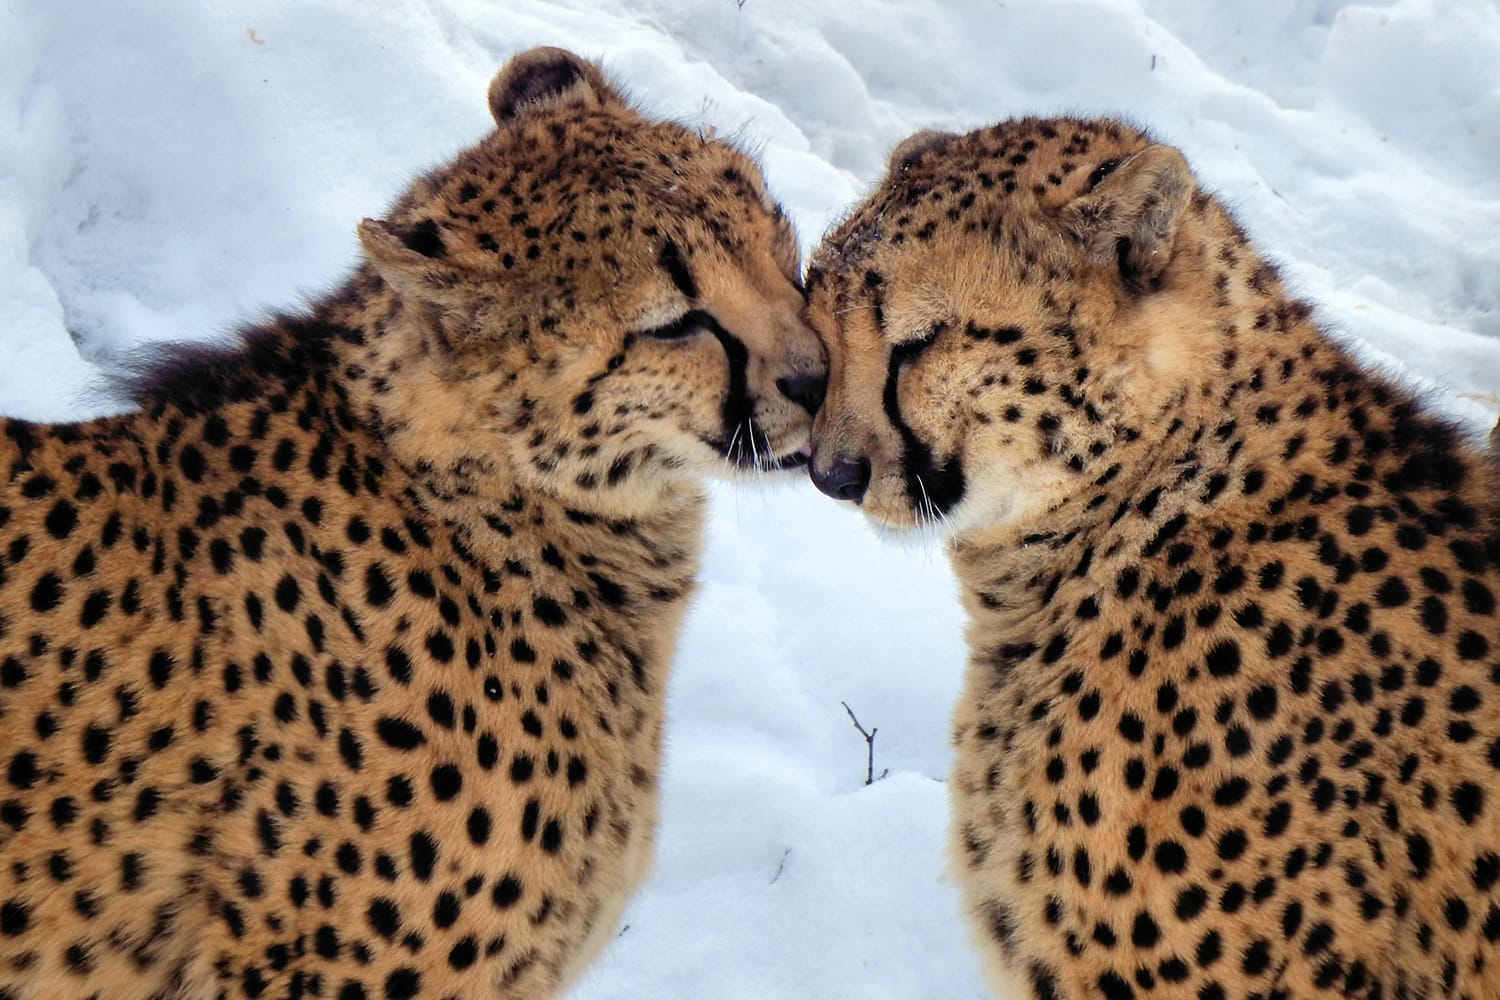 Cheetah brothers at the Cleveland Zoo in Ohio, USA